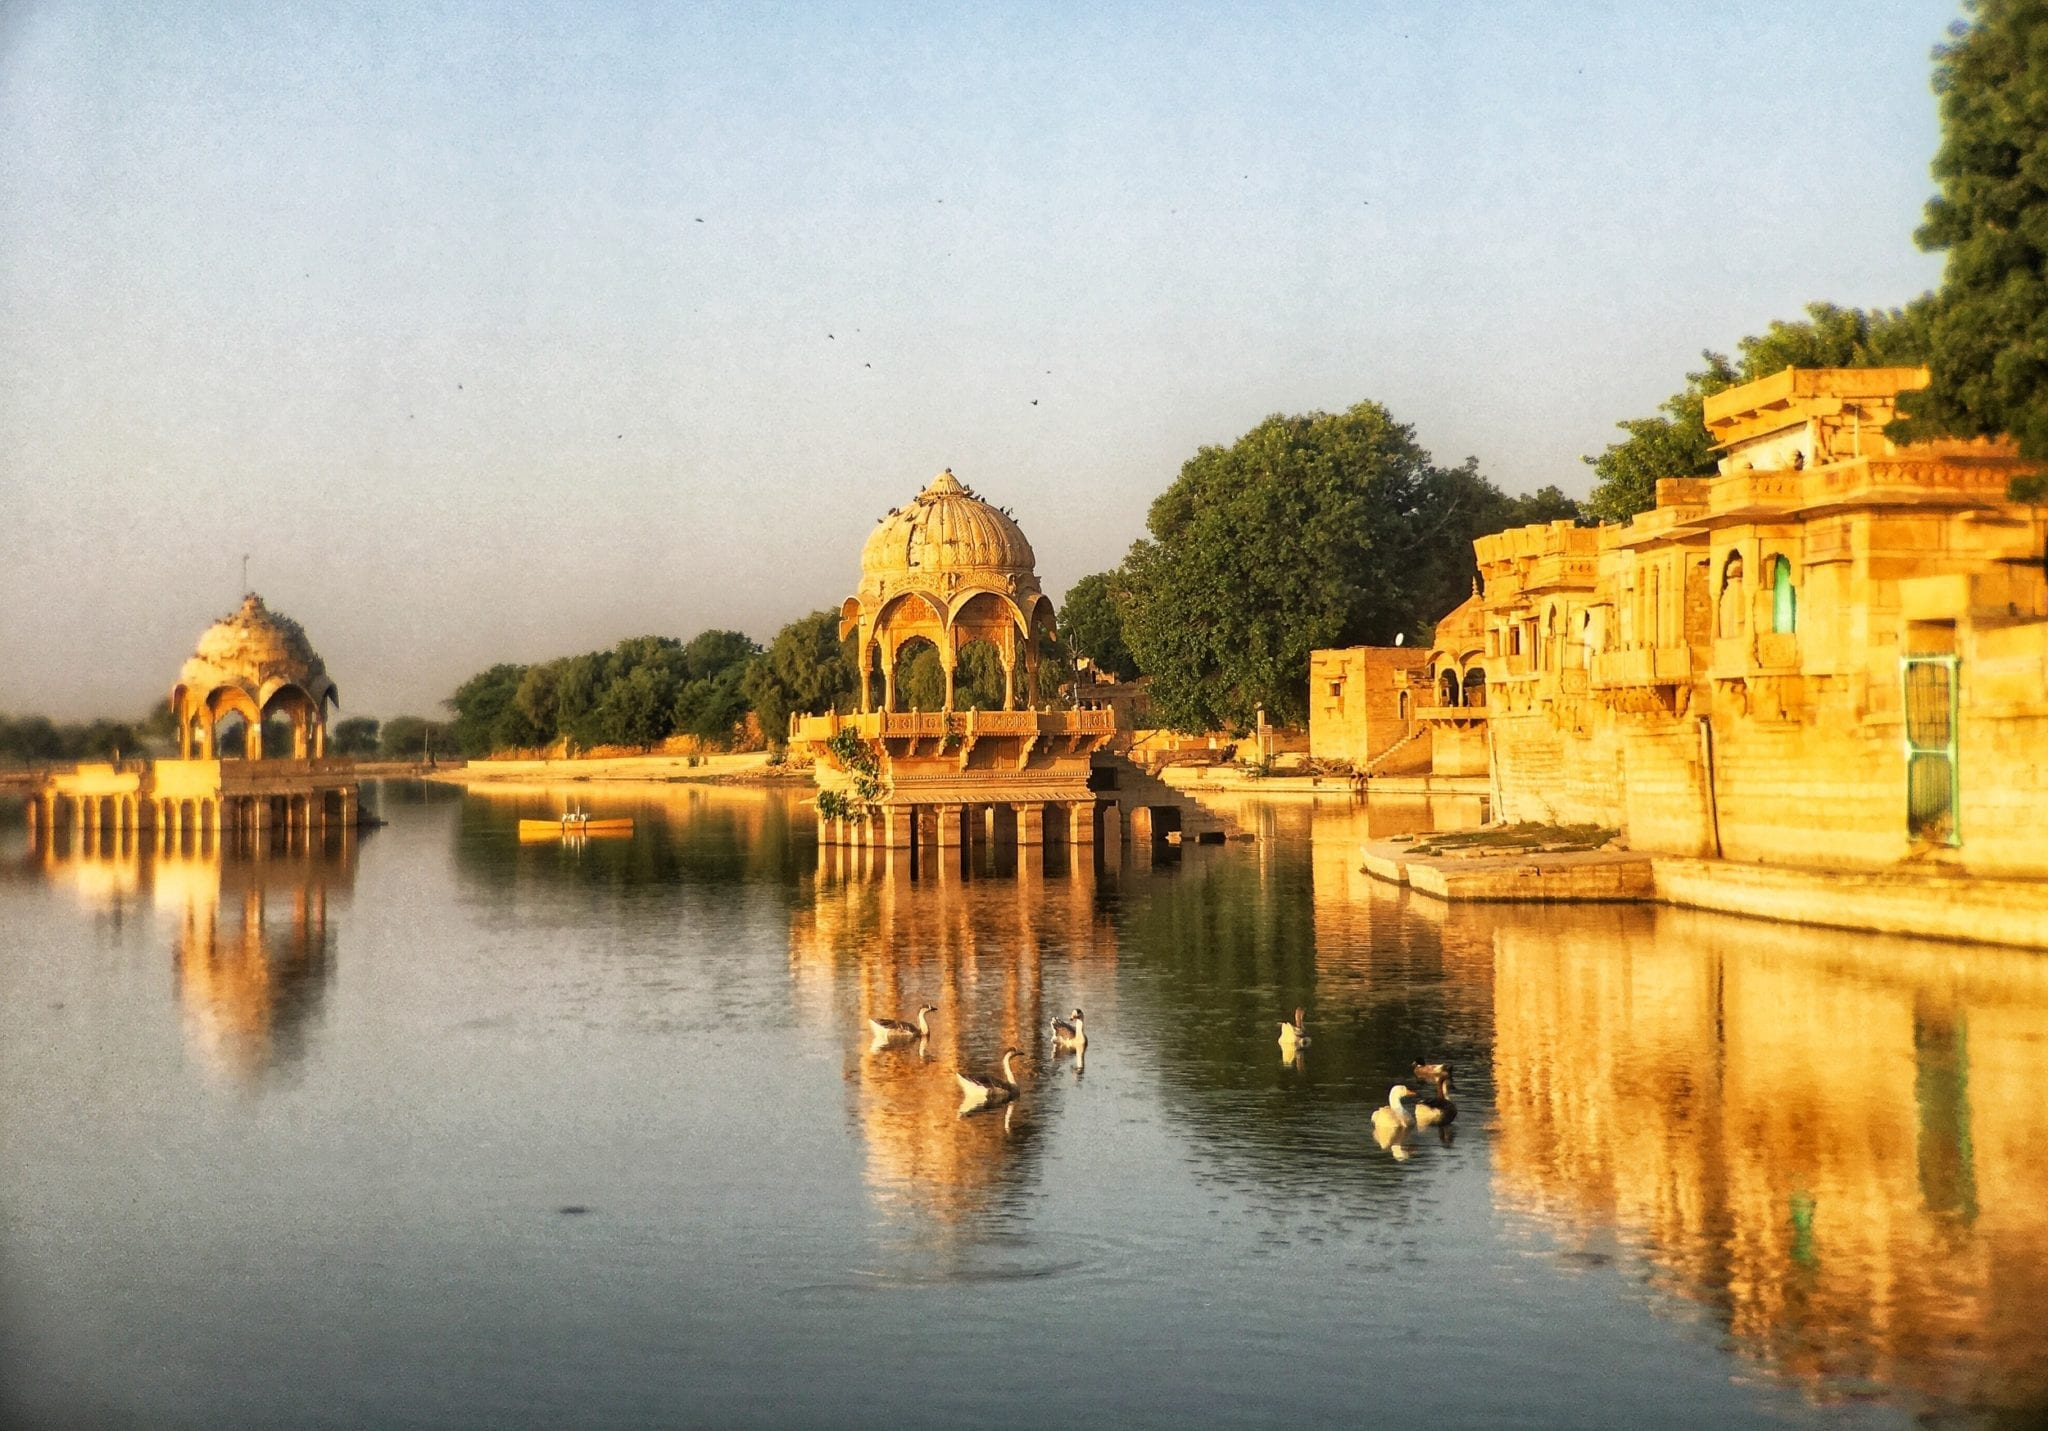 The golden buildings of Jaisalmer, Rajasthan, India, perched on the blue lake at dusk.